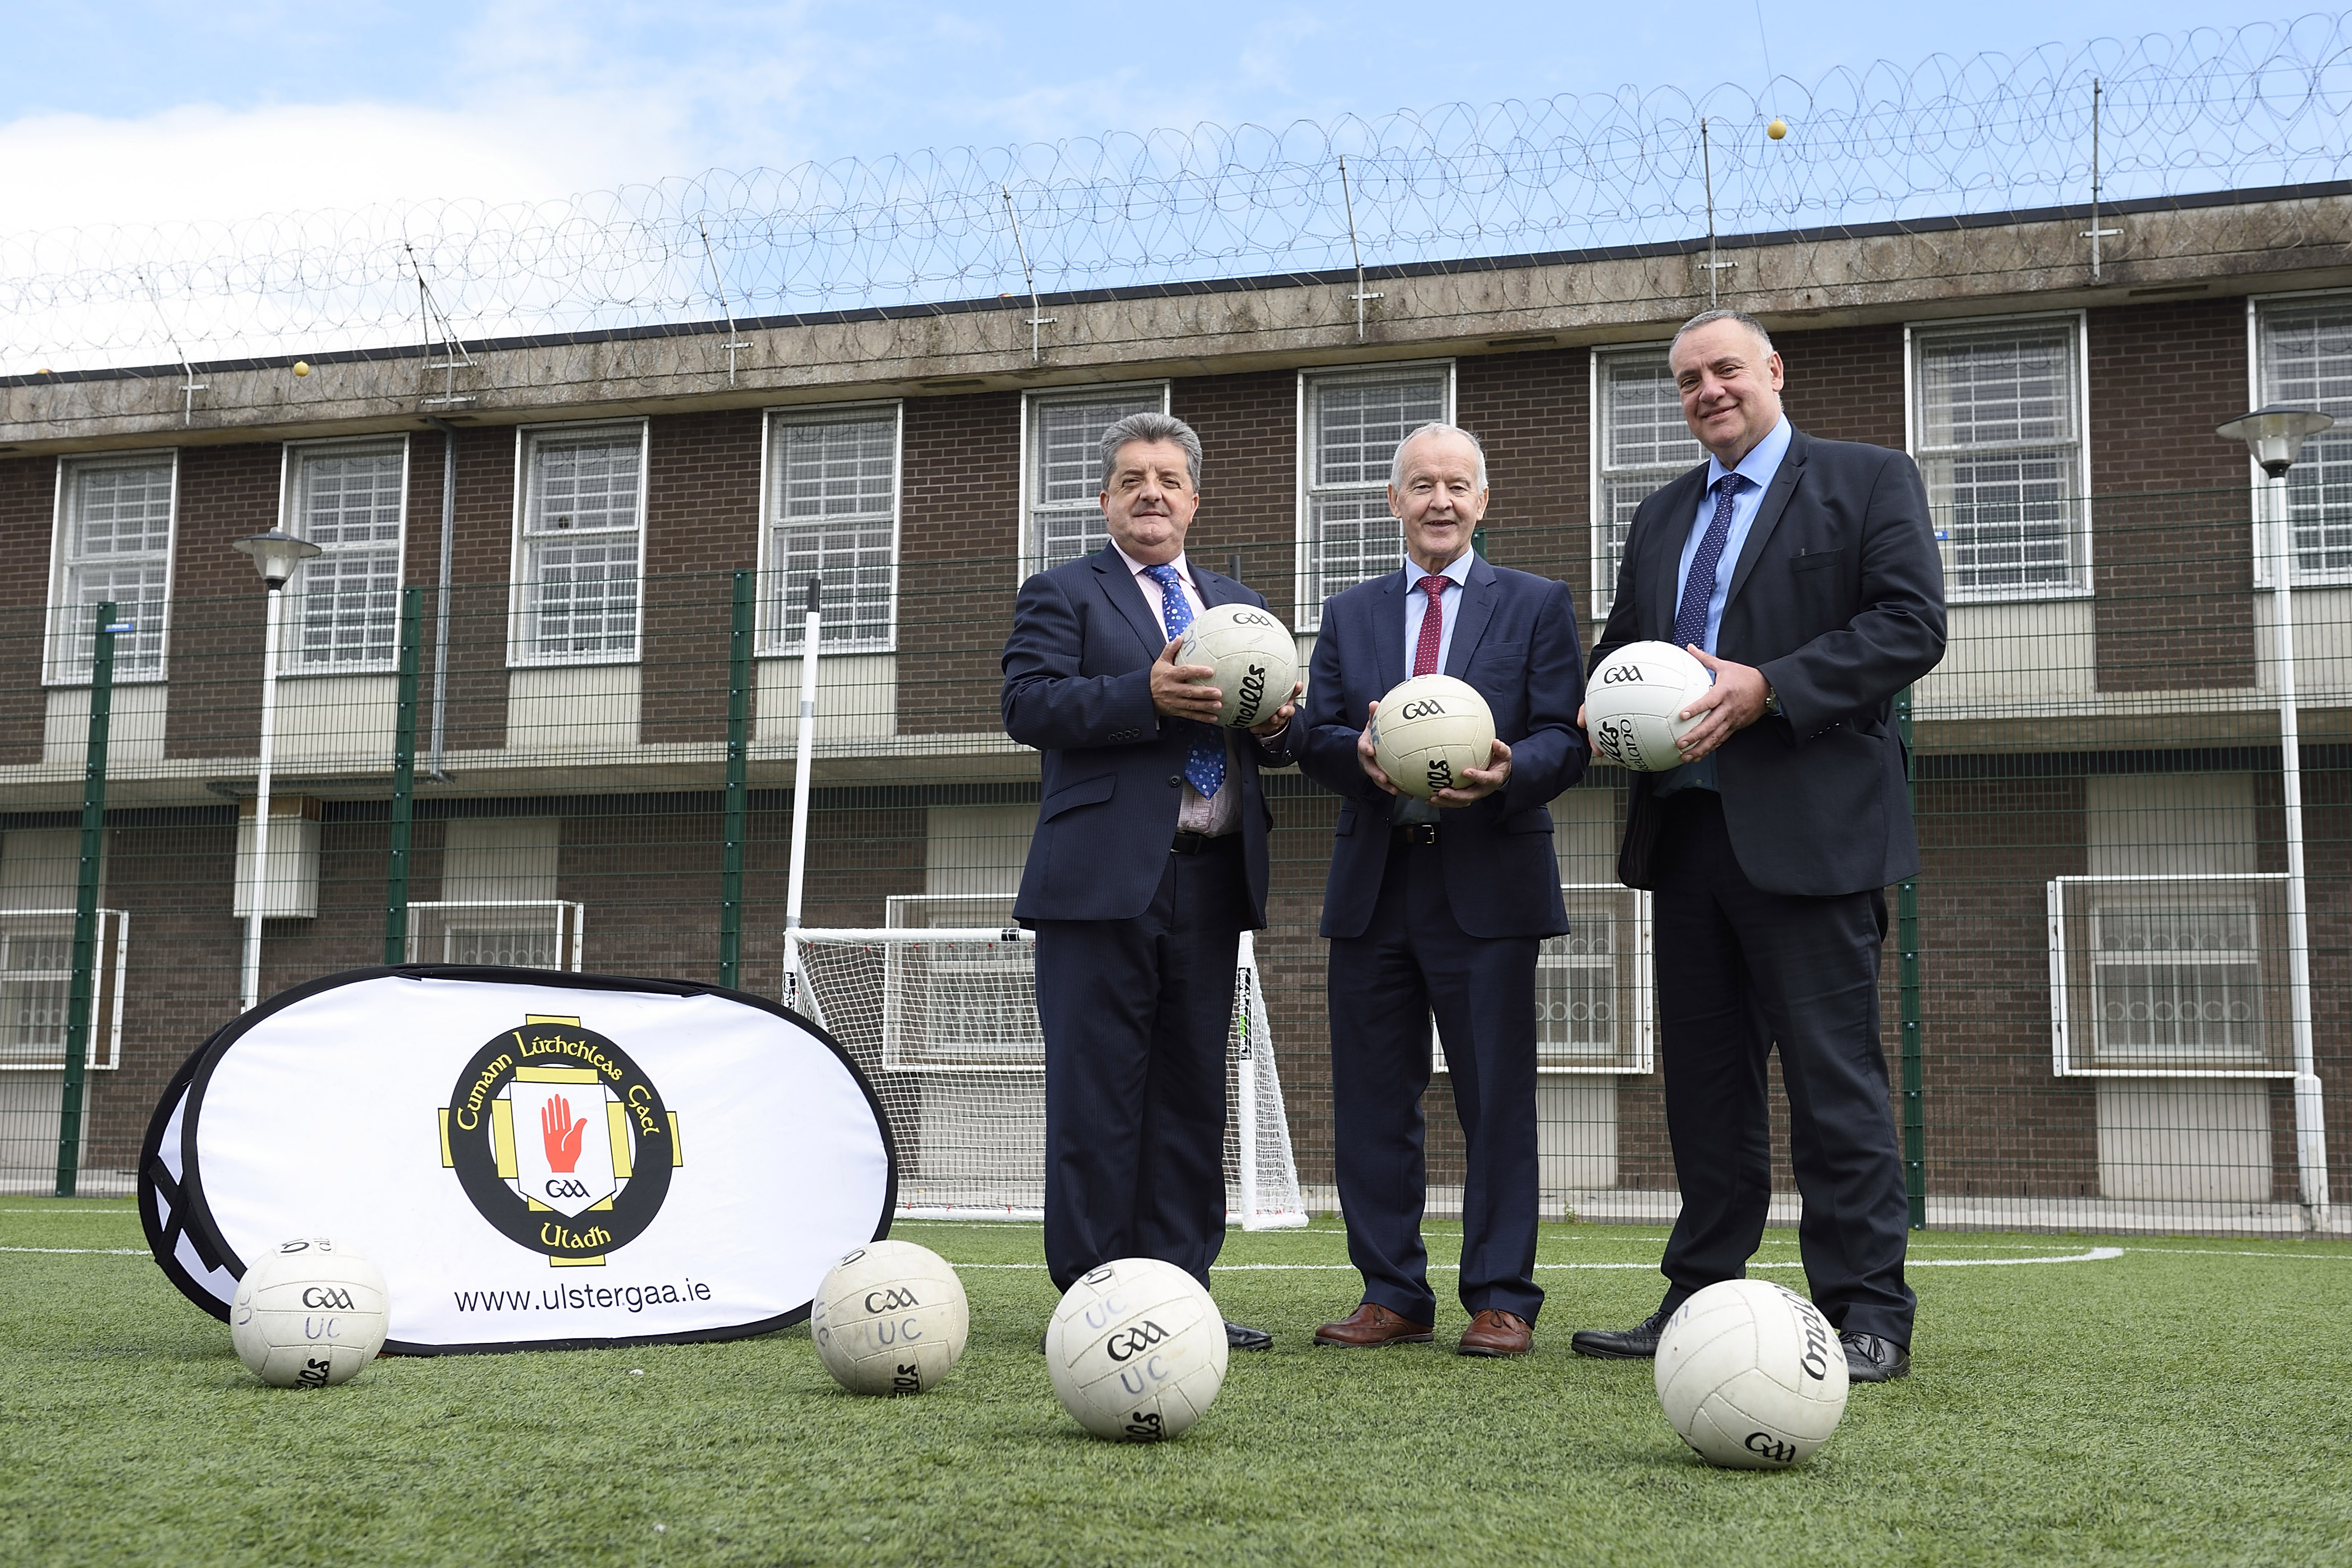 Ulster GAA delivers Prison Service coaching course